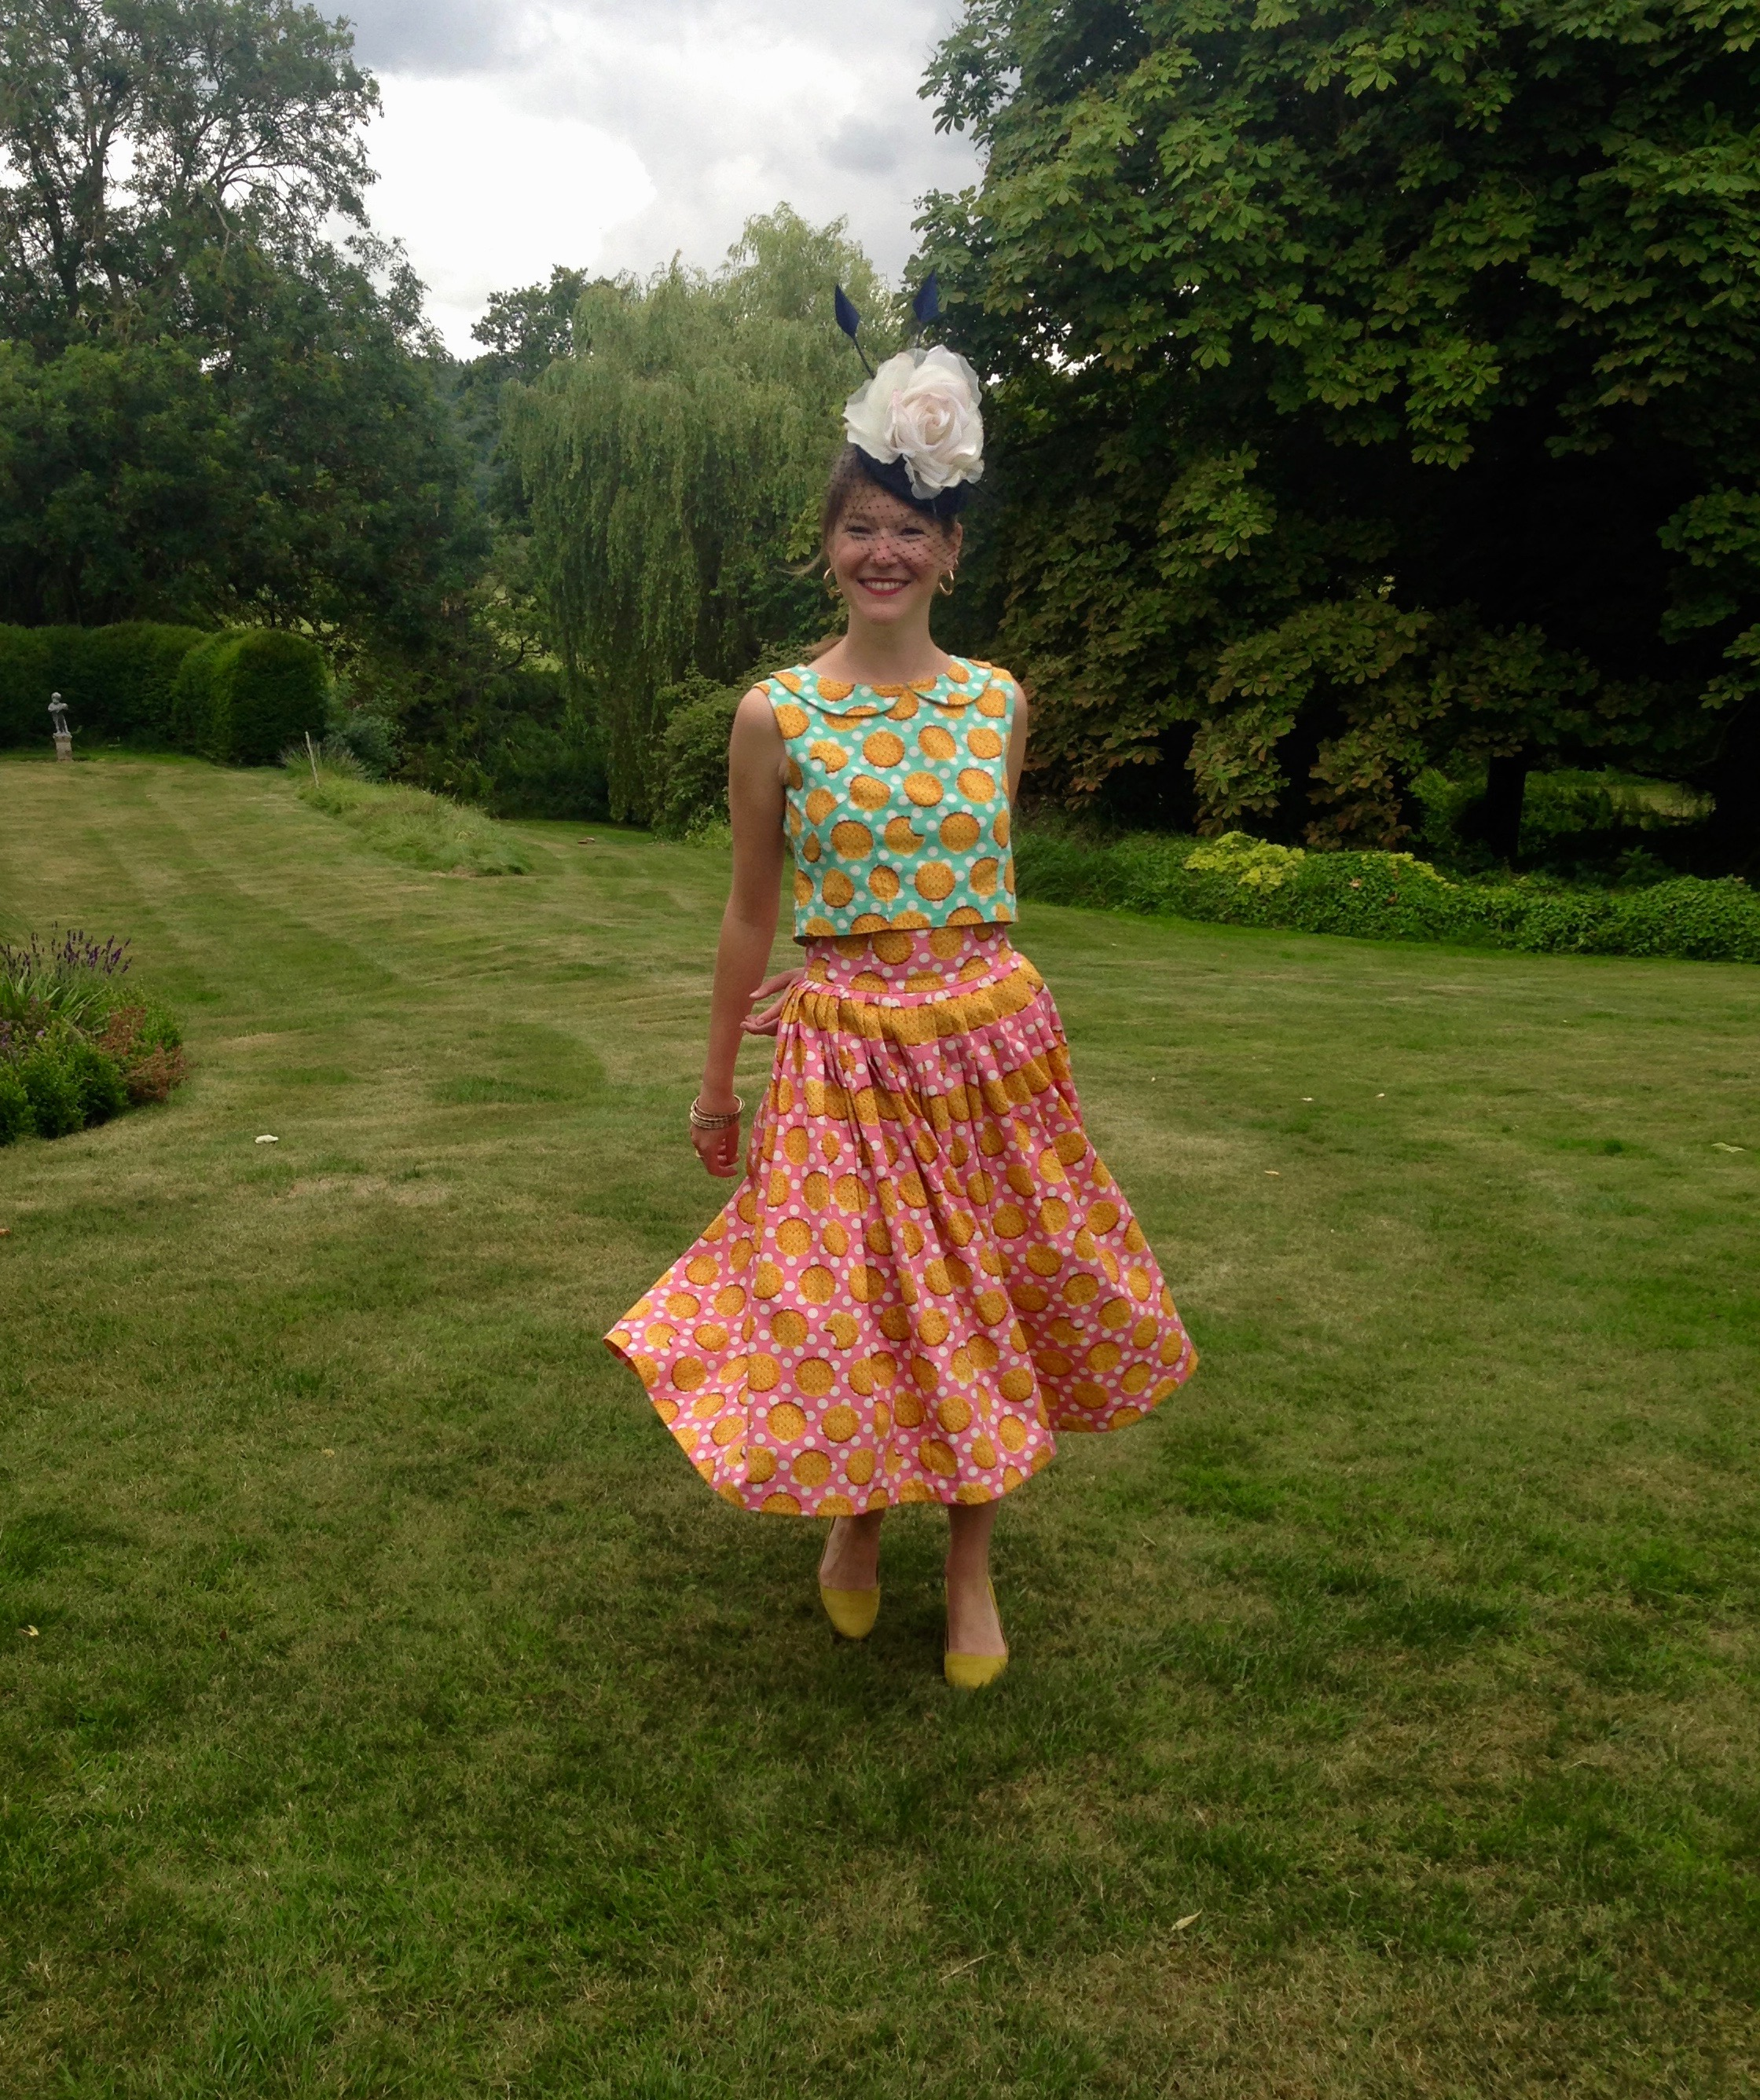 Rosemary wearing her biscuit cropped top and high waisted skirt